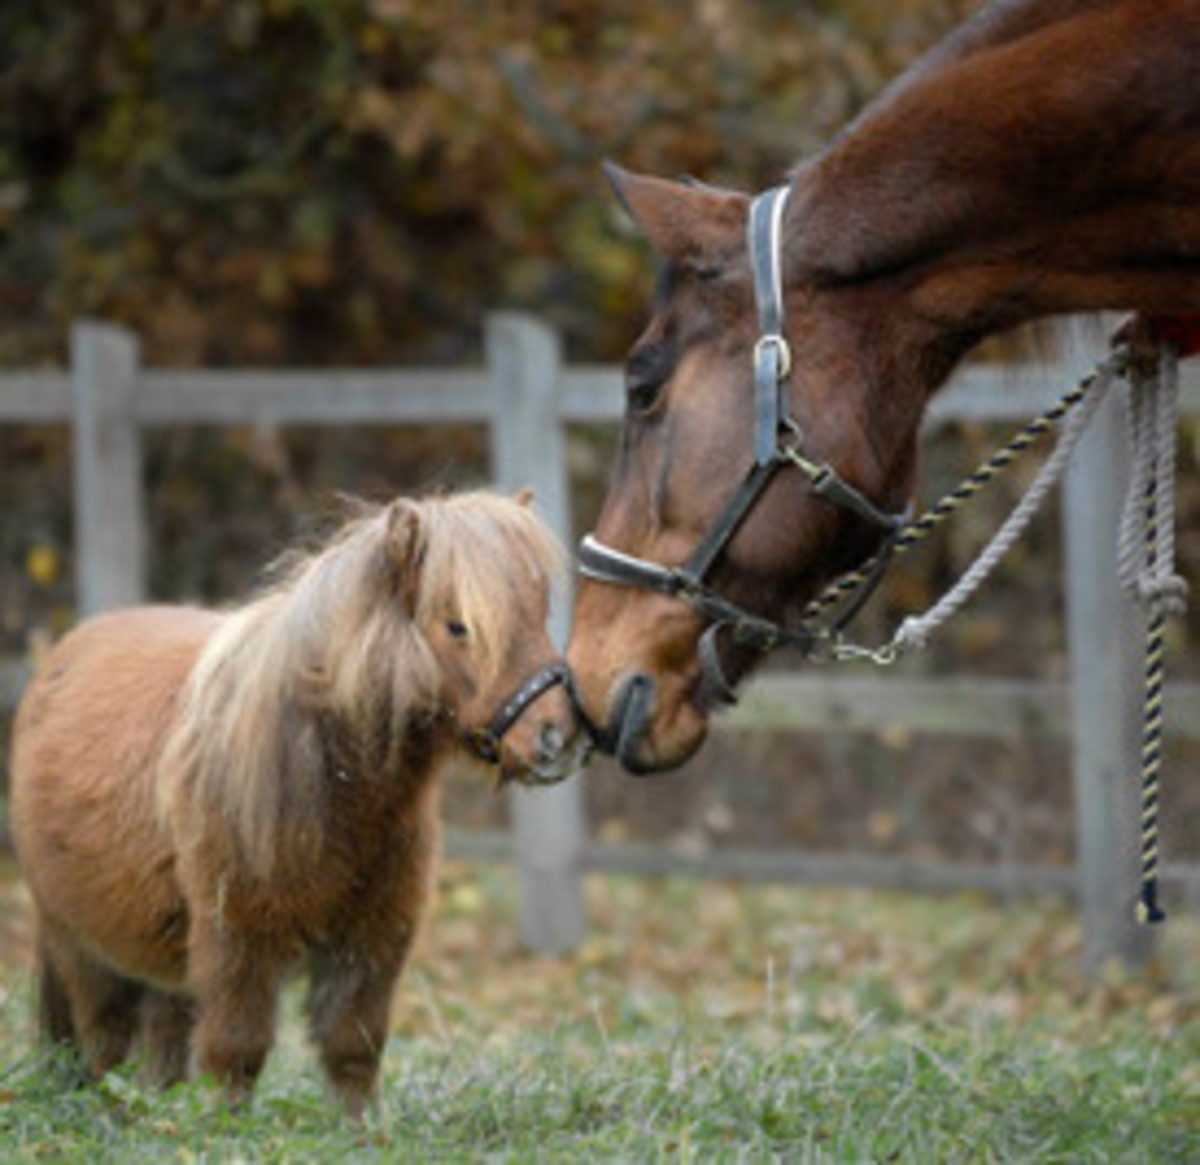 Lucy, Britain's smallest full-grown horse.